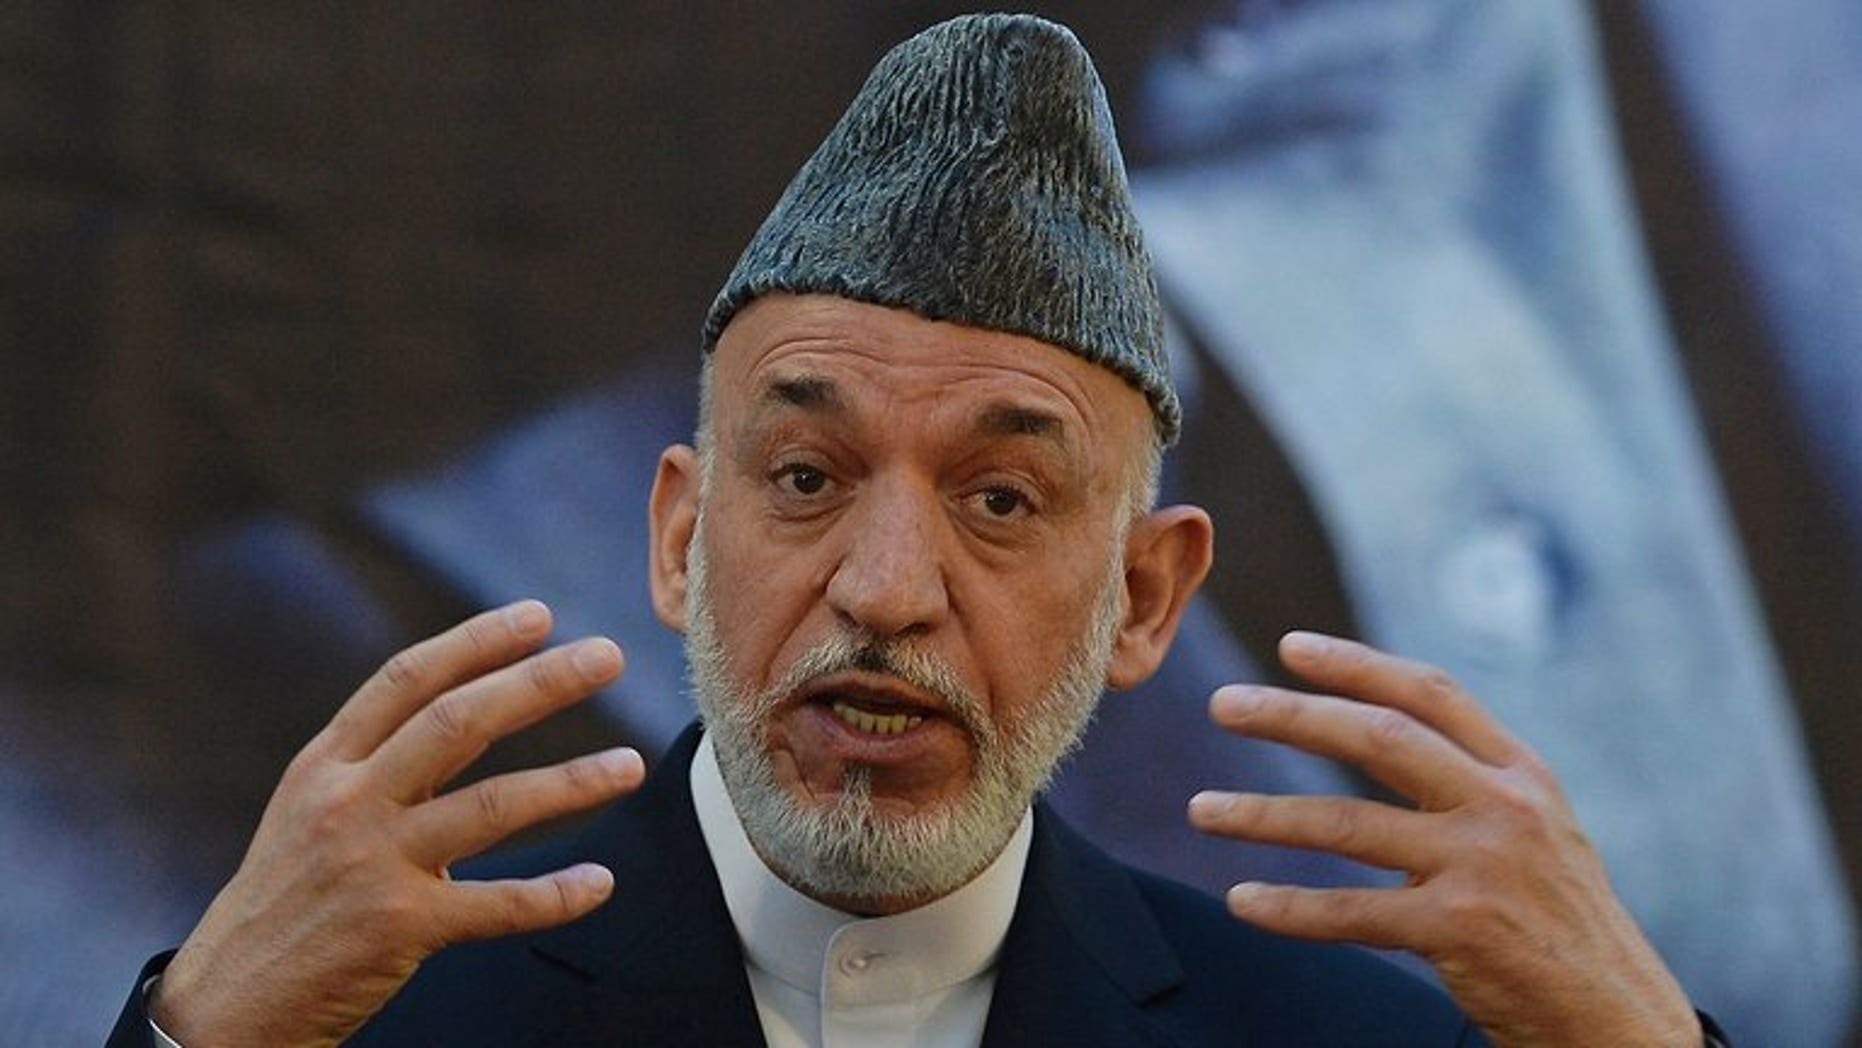 Afghan President Hamid Karzai speaks at a military academy outside Kabul on June 18, 2013. Karzai said Saturday that the United States should ensure a better future for villages where an American army sergeant went on a killing rampage last year.